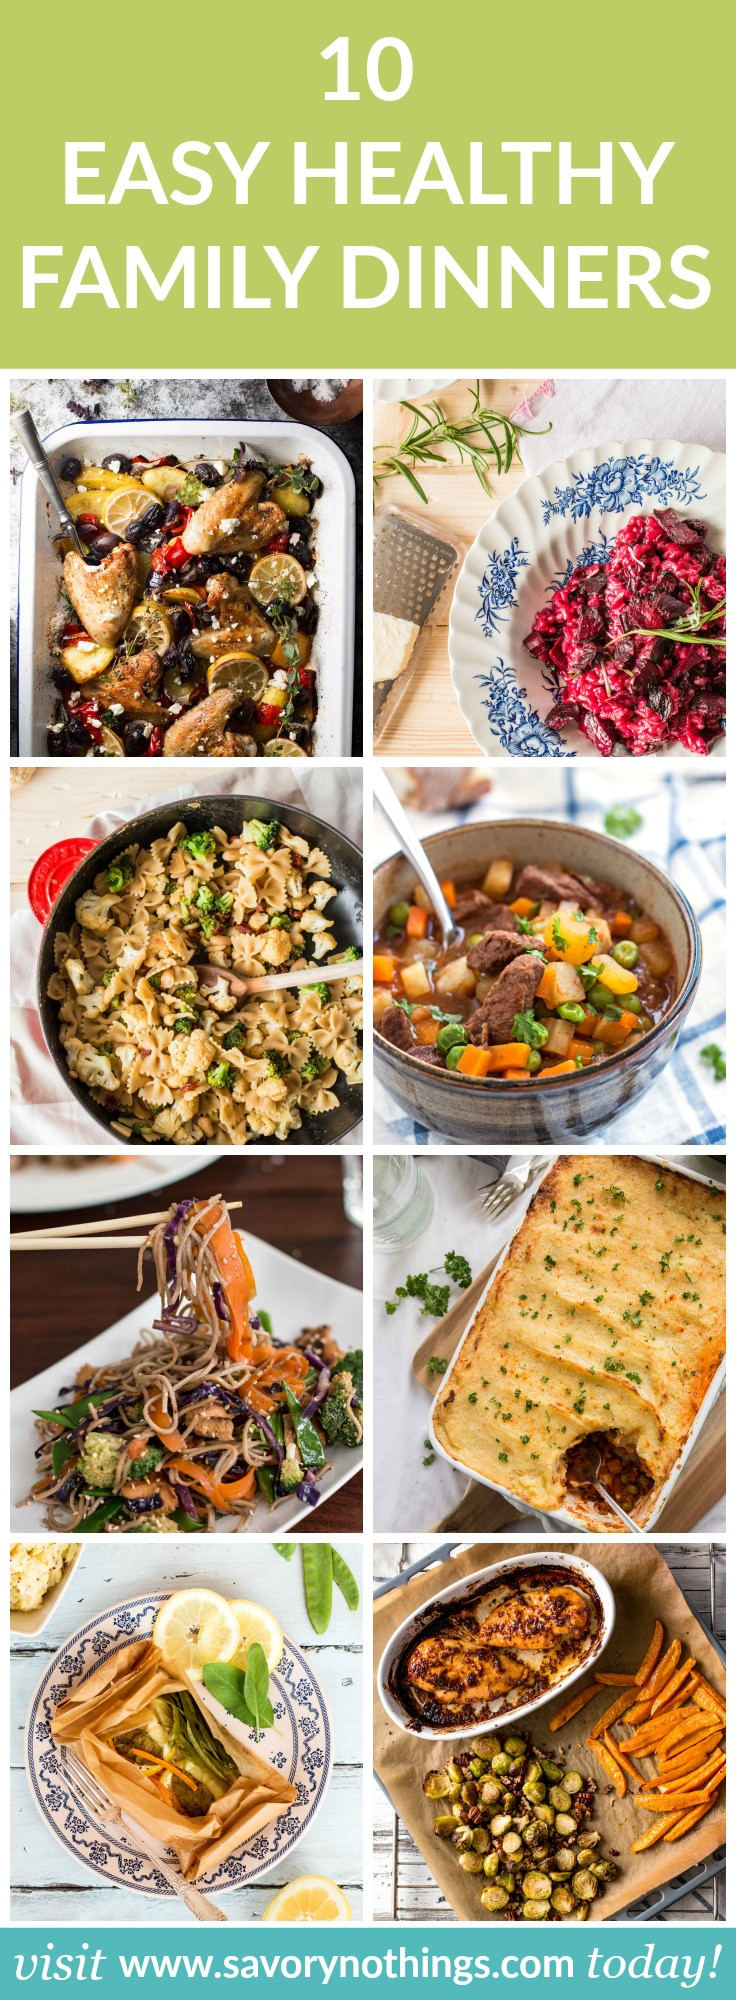 Easy Healthy Dinners For Family  10 Healthy Family Dinners Easy Recipes for Busy Weeknights